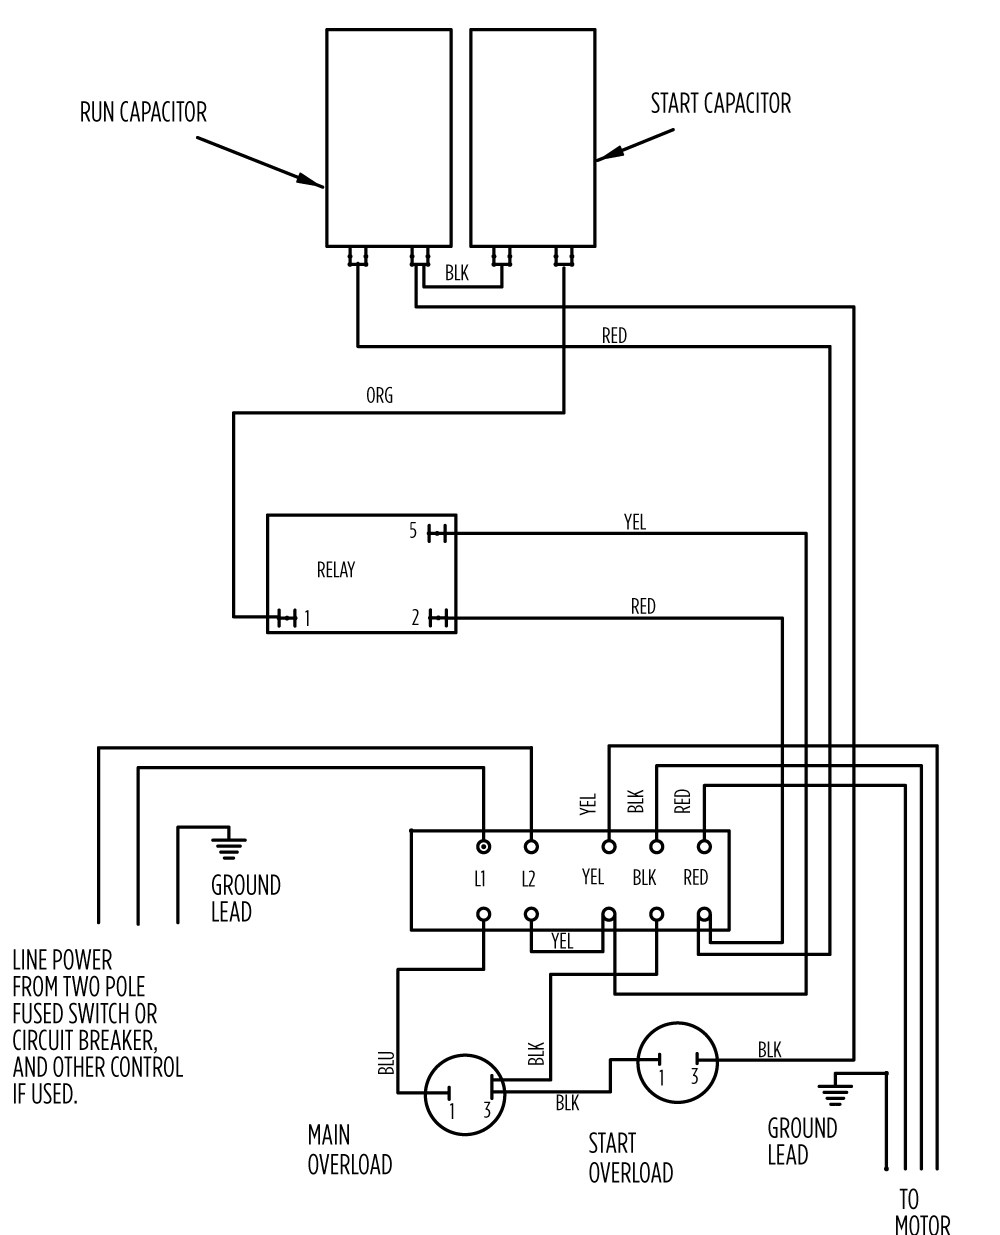 3 Phase Well Pump Wiring Diagram Wire Data Schema Assemblyrampswiringjpg 800pxmark2assemblyrampswiringjpg Aim Manual Page 55 Single Motors And Controls Motor Rh Franklinwater Com 220